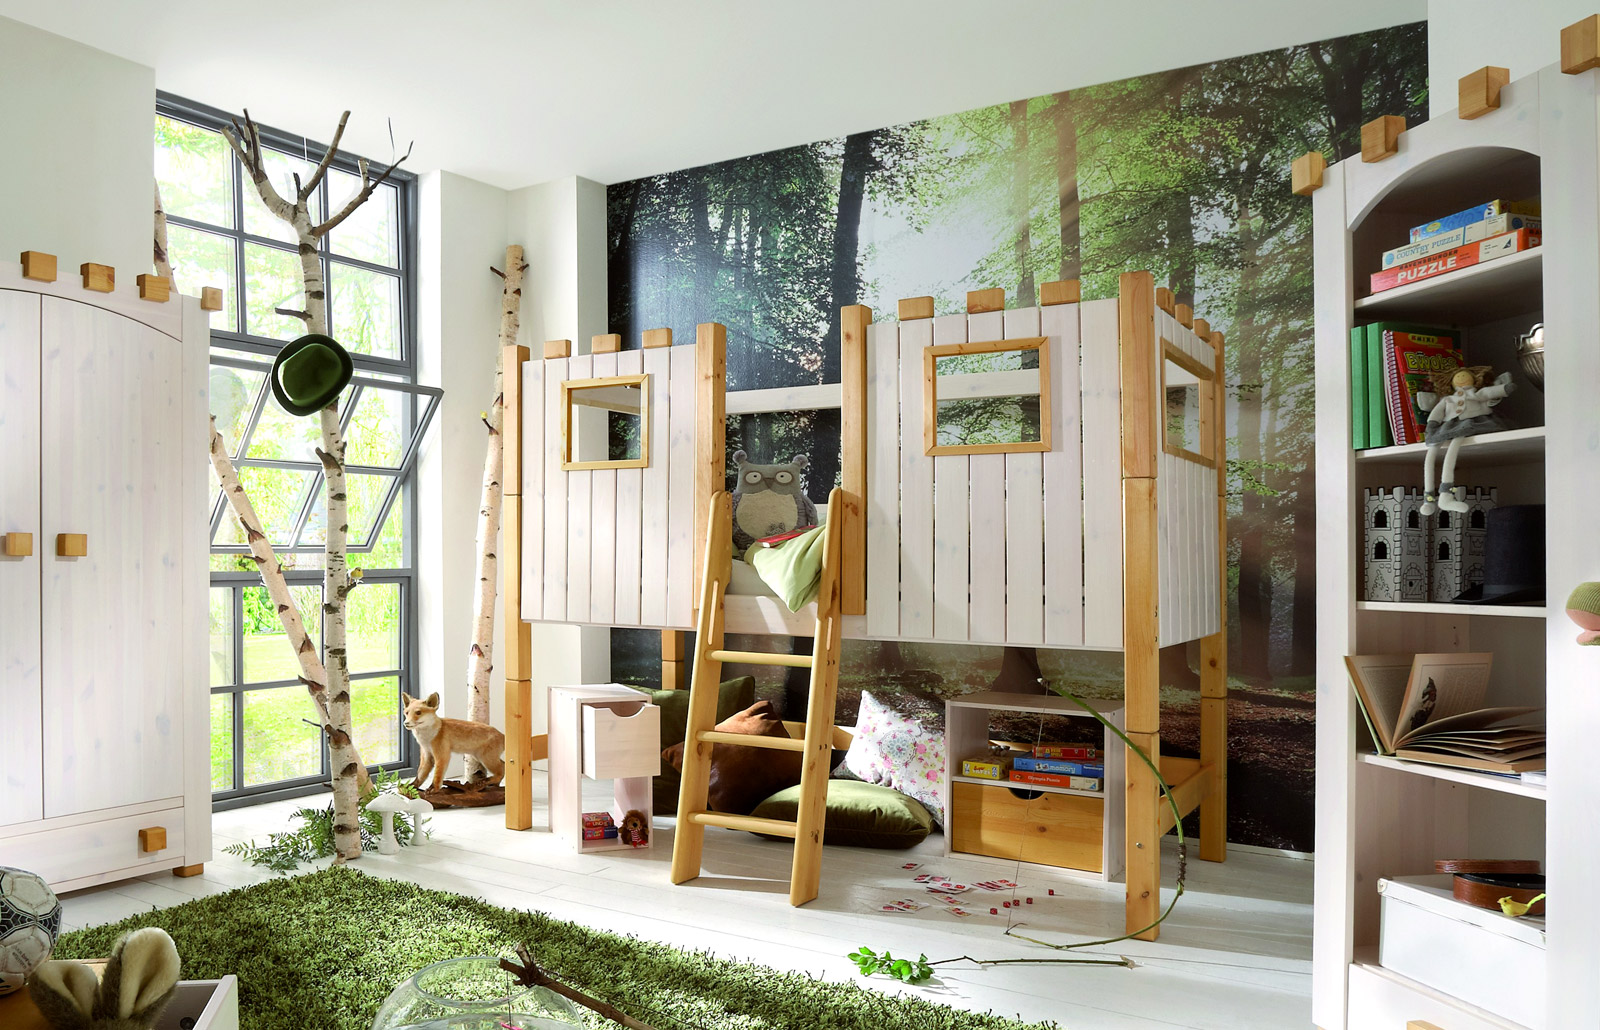 hochbett im kinderzimmer pro und contra das platzsparende mobelstuck. Black Bedroom Furniture Sets. Home Design Ideas